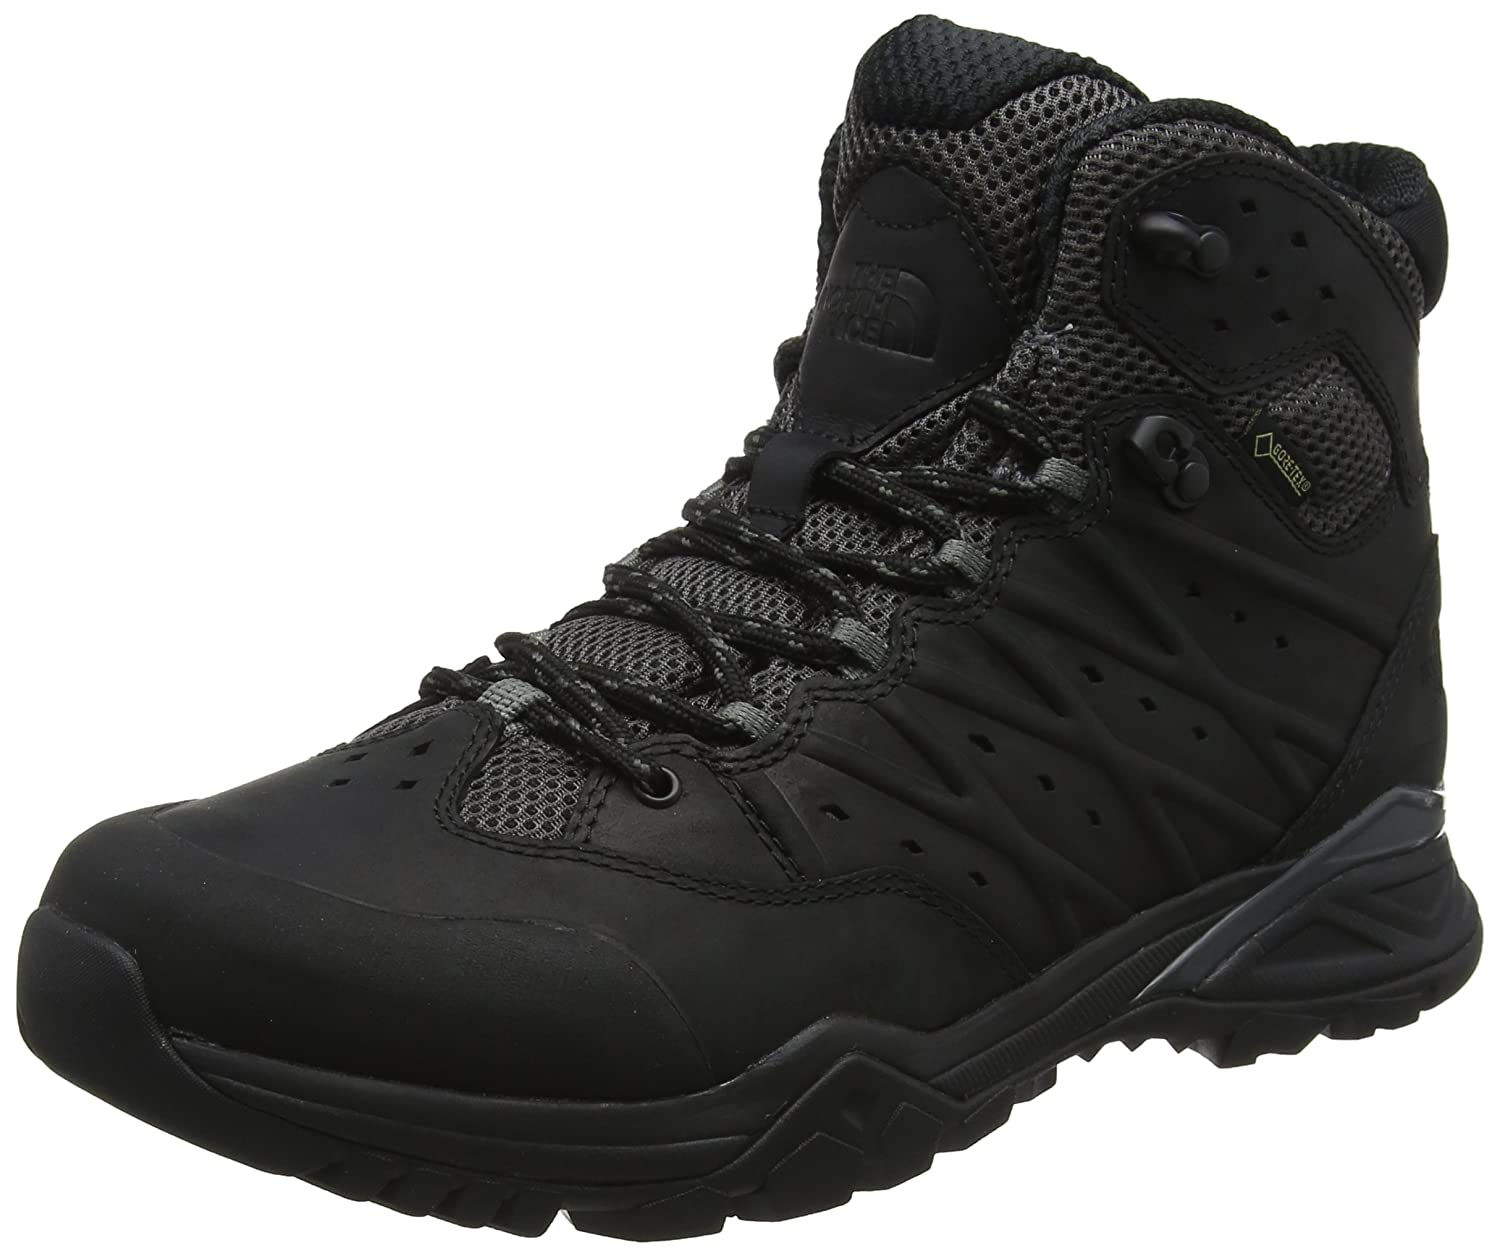 TALLA 42 EU. The North Face Hedgehog Hike II Mid Gore-Tex, Botas de Senderismo para Hombre